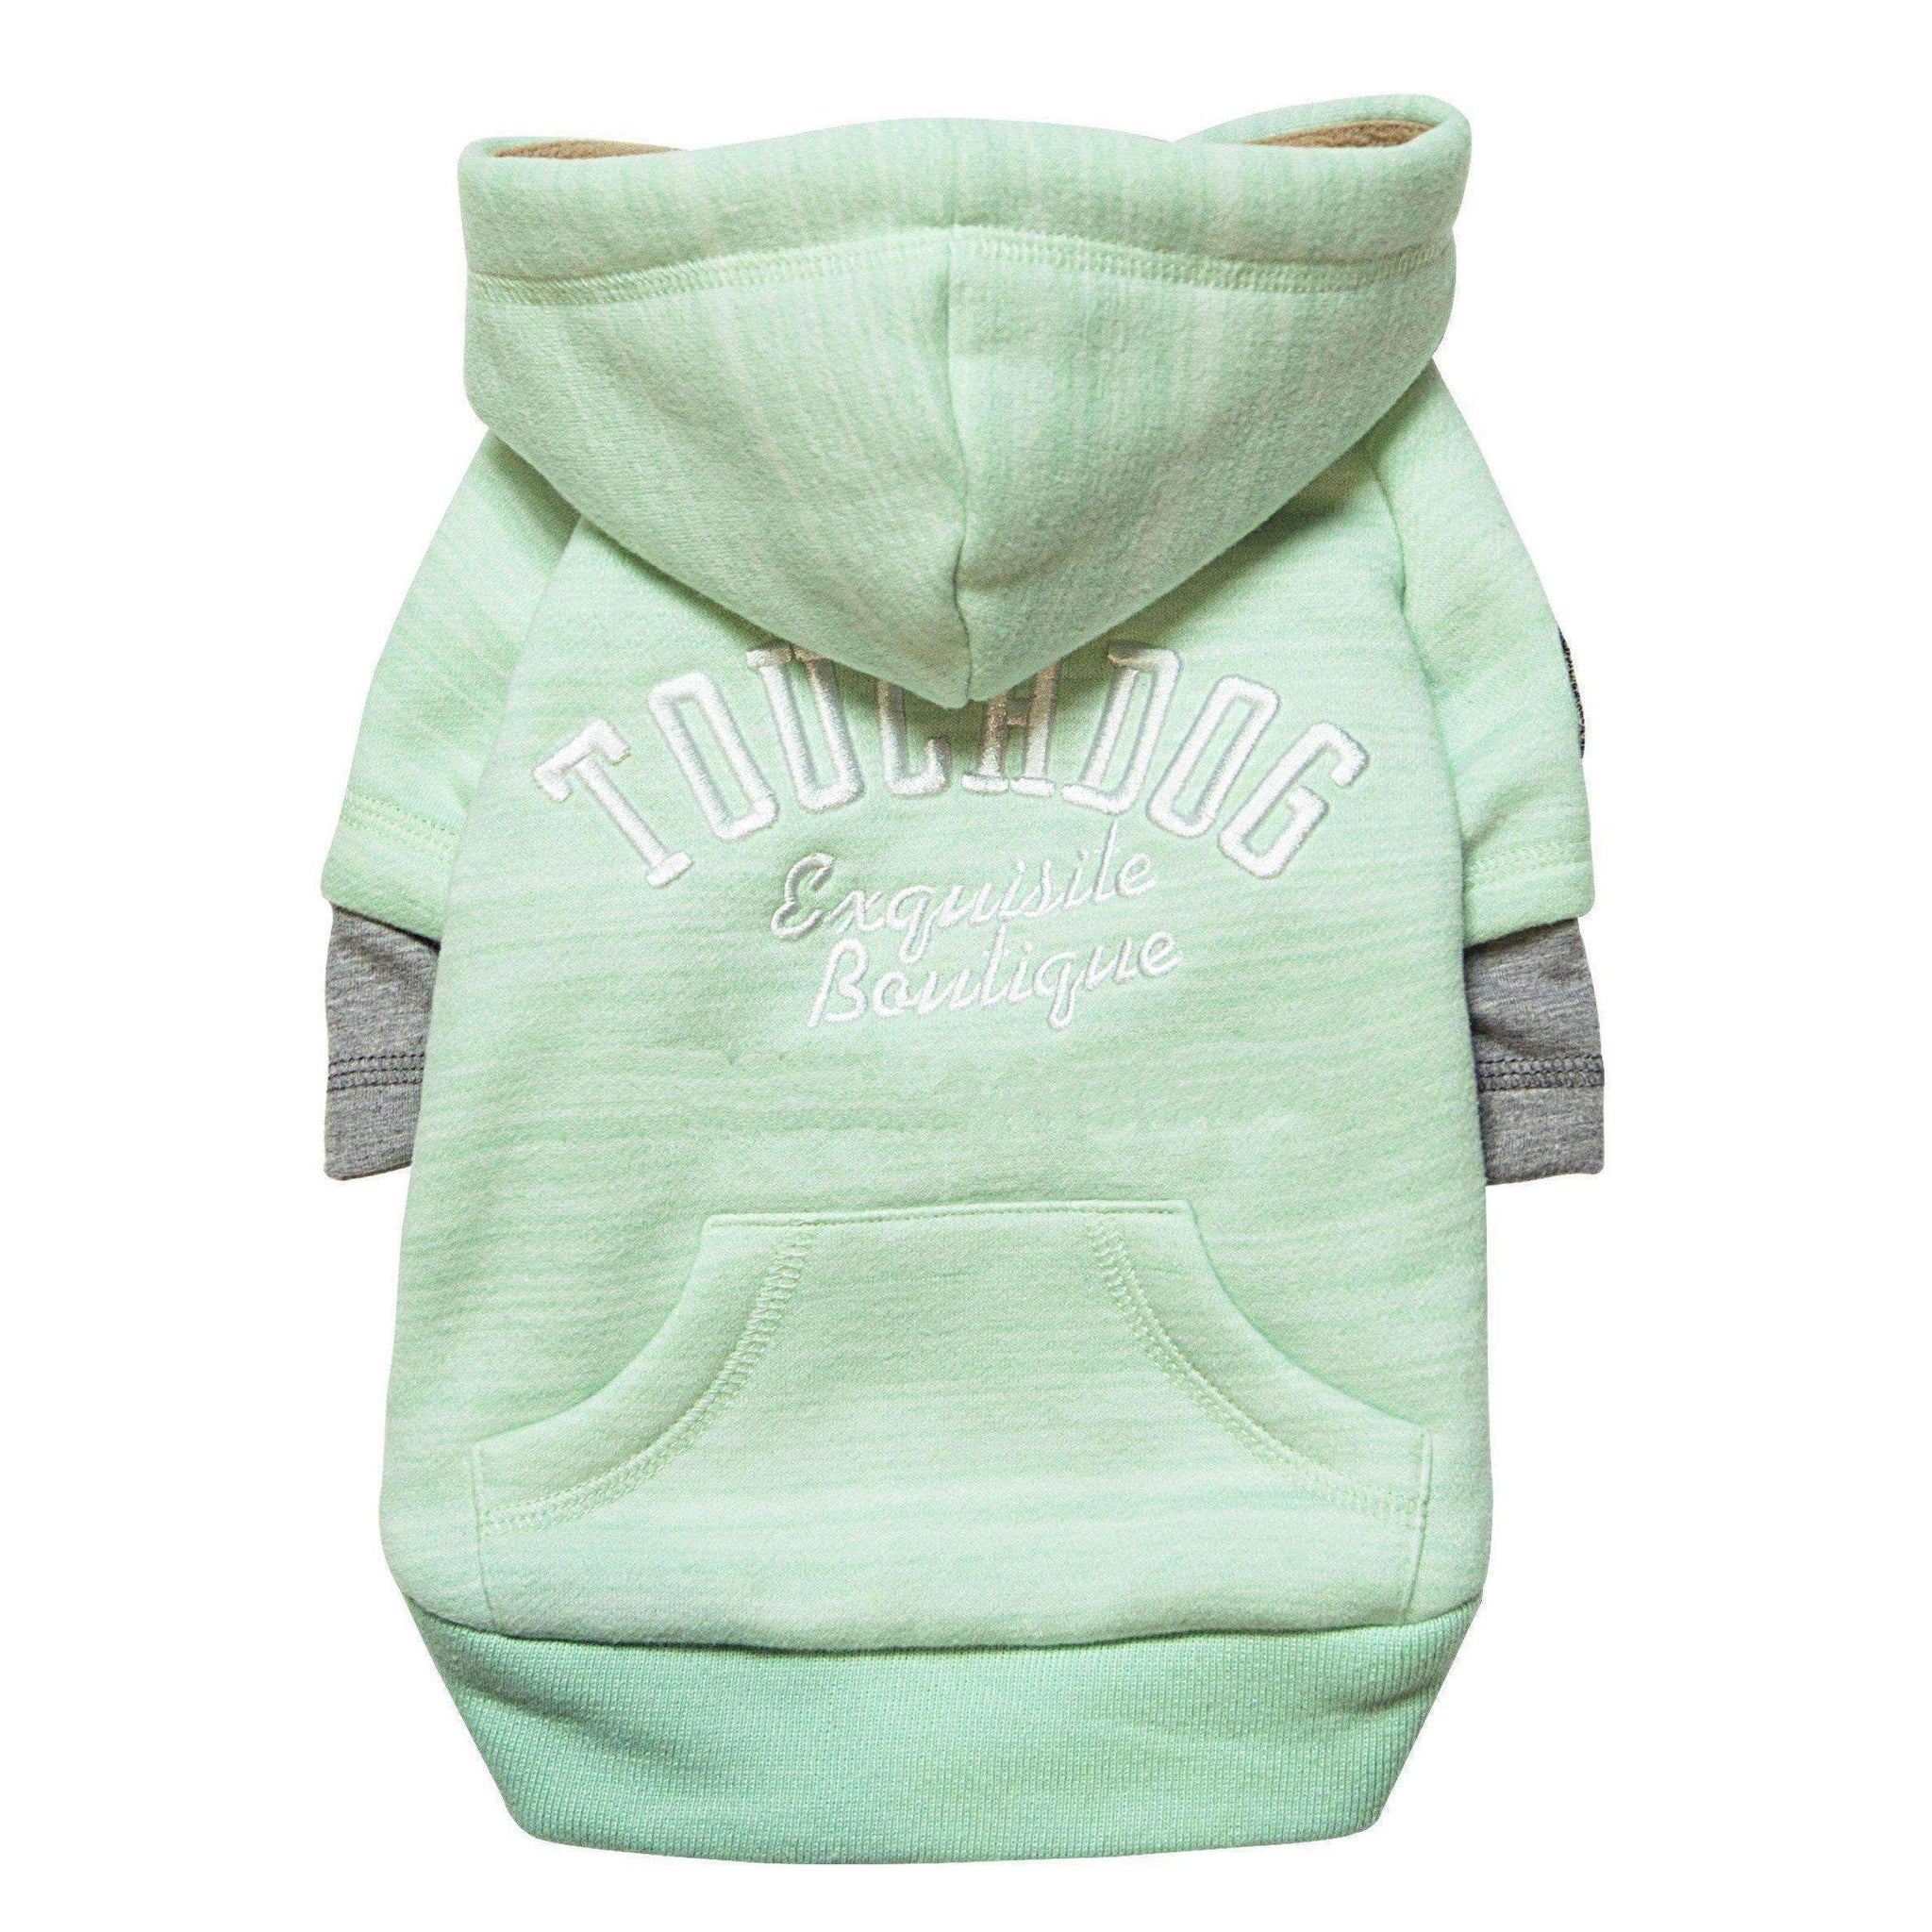 Touchdog Hampton Beach Designer Ultra Soft Sand-Blasted Cotton Pet Dog Hoodie Sweater - Green-Touchdog-DirtyFurClothing